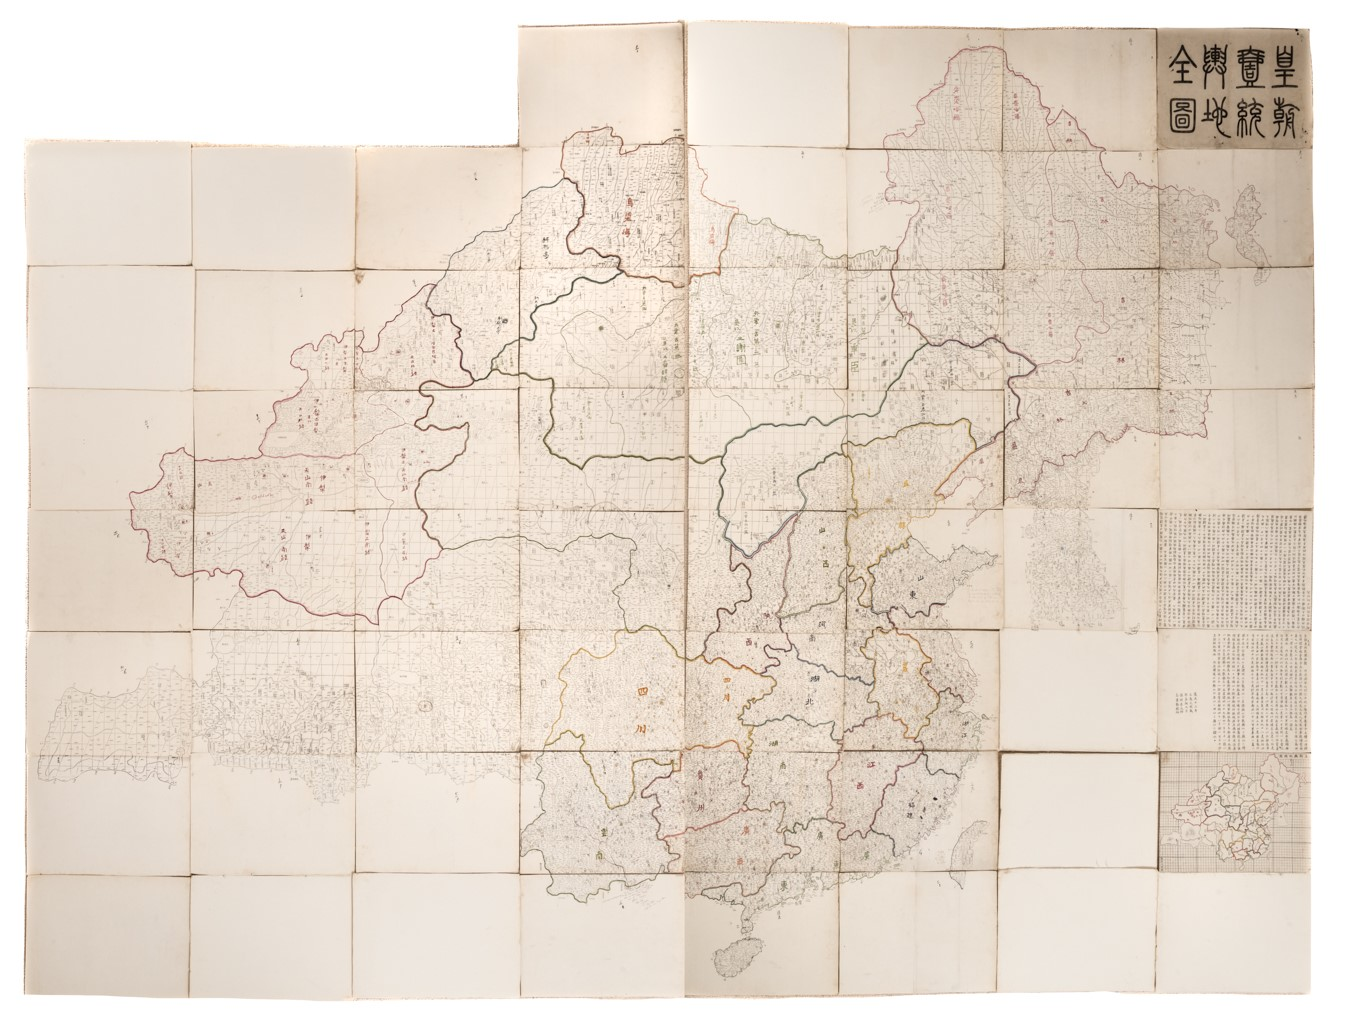 Complete Map of the Unified Realm of the Imperial Provinces, 1832